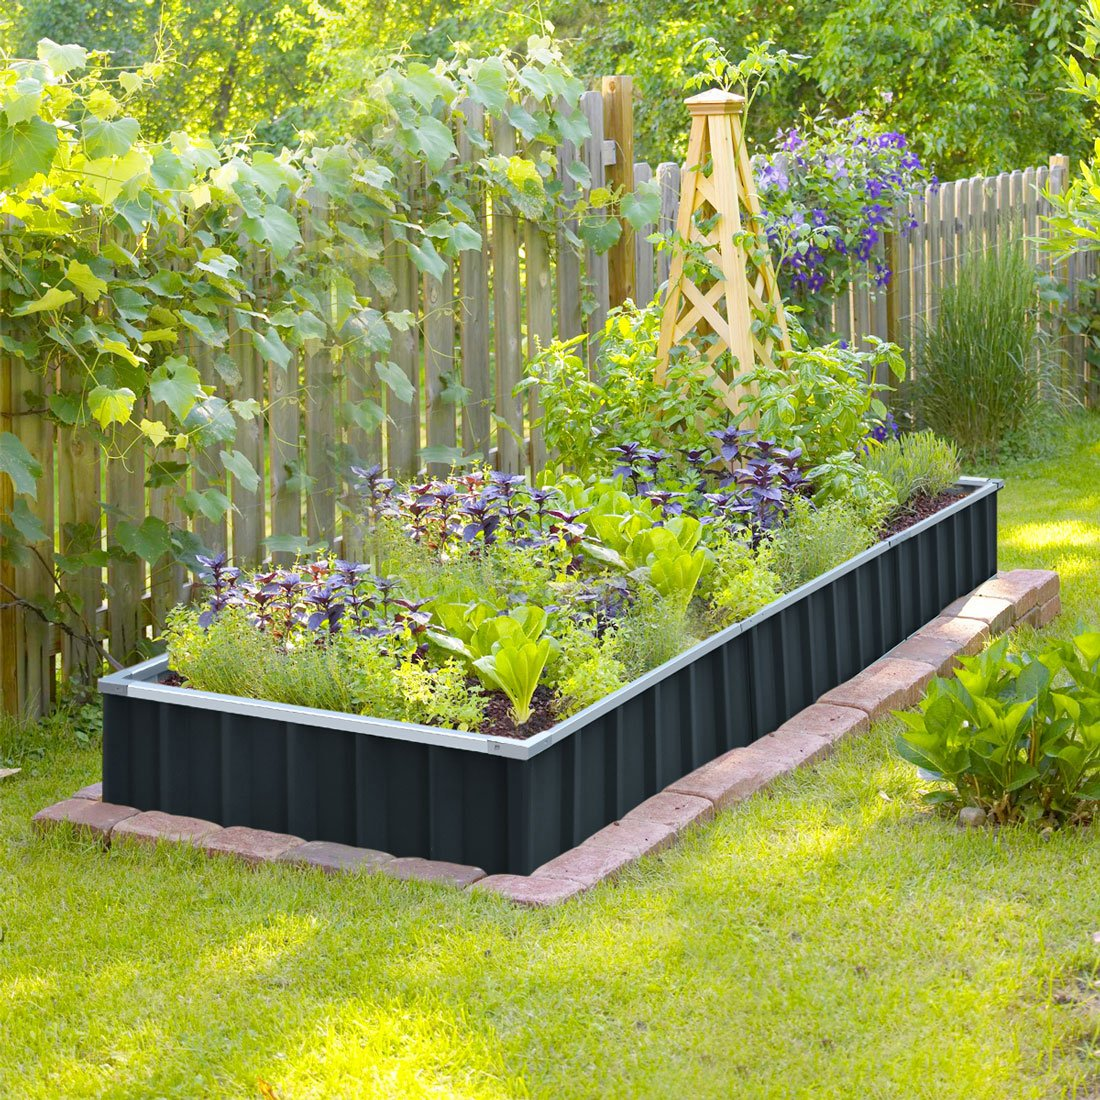 King Bird Extra Thick 2 Ply Reinforced Card Frame Raised Garden Bed Galvanized Steel Metal Planter Kit Box Green 68 X 36 X 12 With 8pcs T Types Tag 2 Pairs Of Gloves Grey Mk